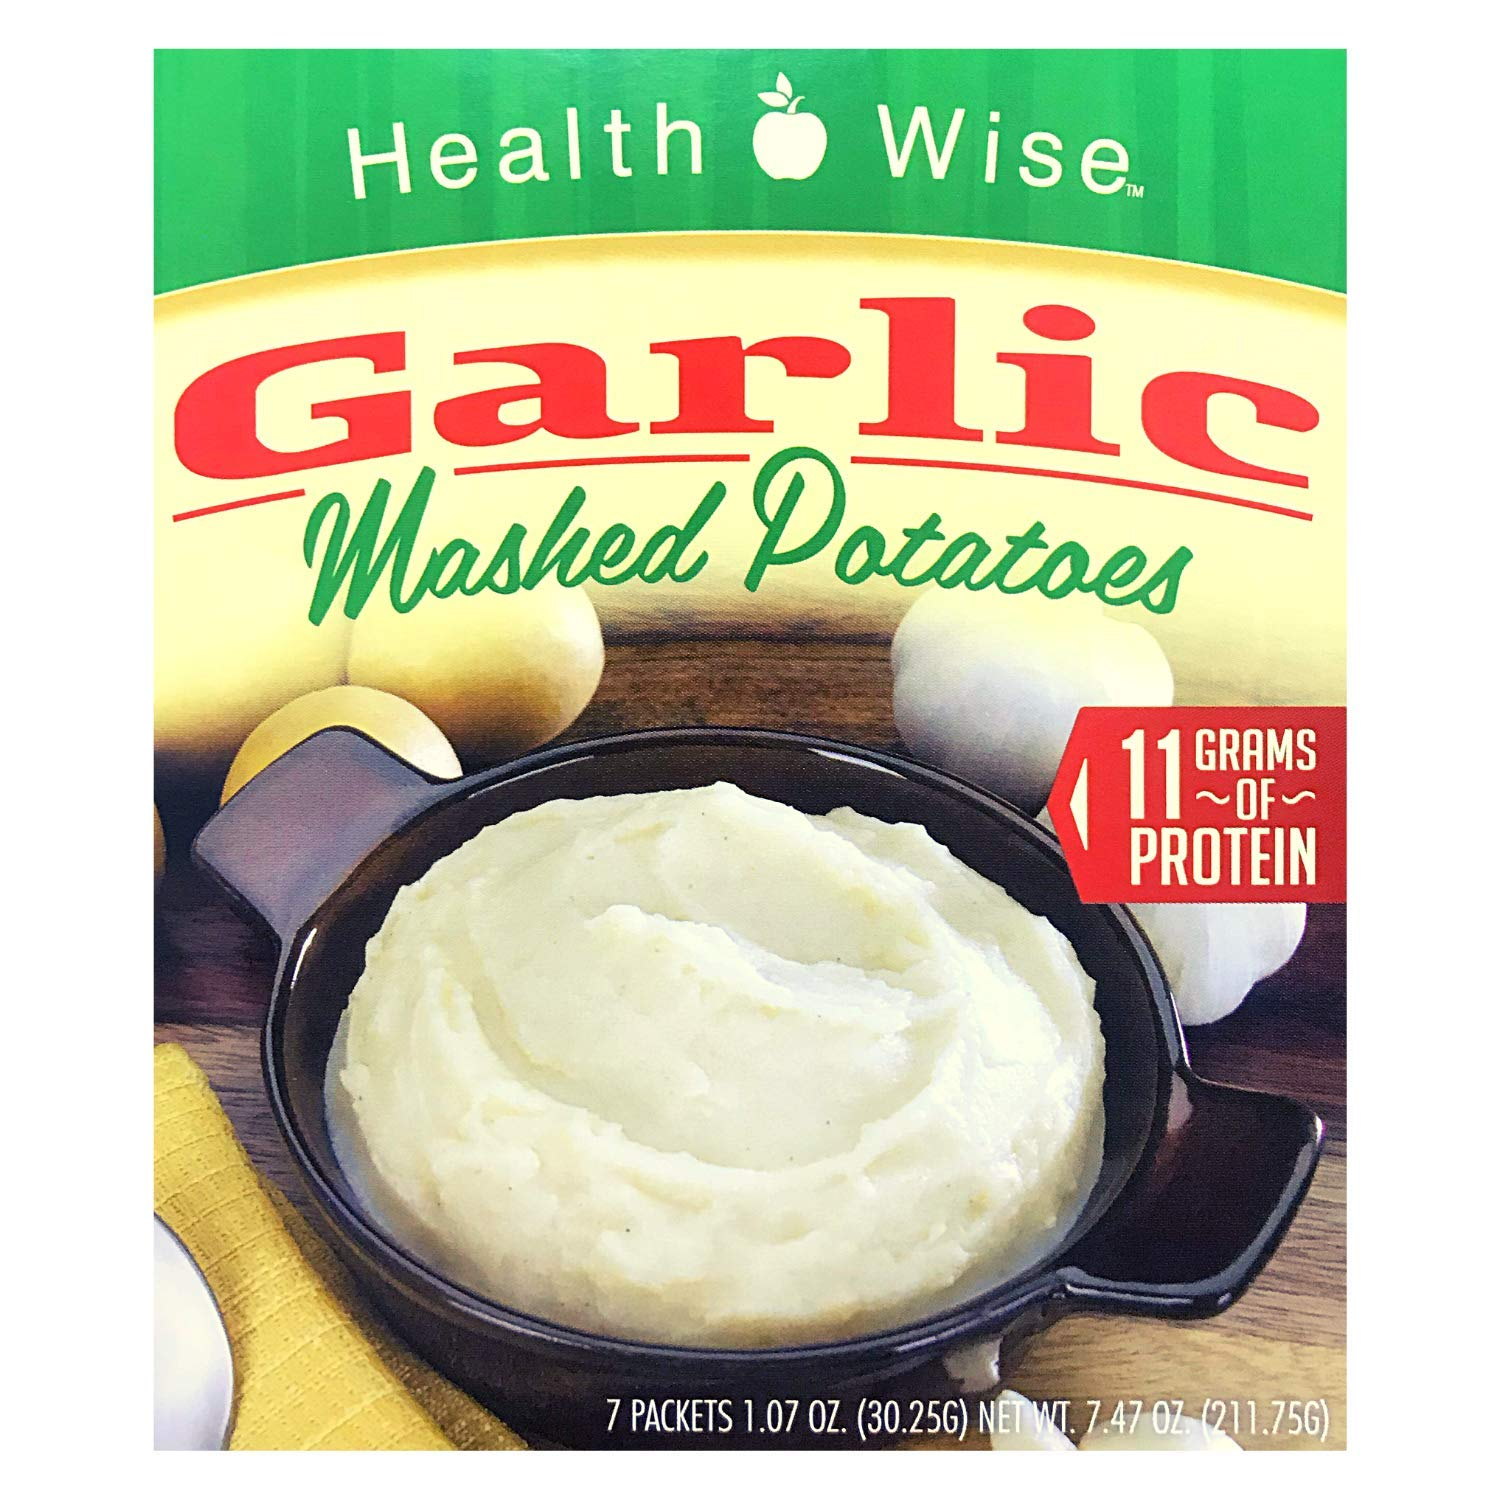 Healthwise - Garlic Mashed Potatoes - 7 Servings - Potato Puree - Light Entrée or Healthy Side Dish - High Protein - Low Calorie - Low Fat - Gluten Free (1 Pack)